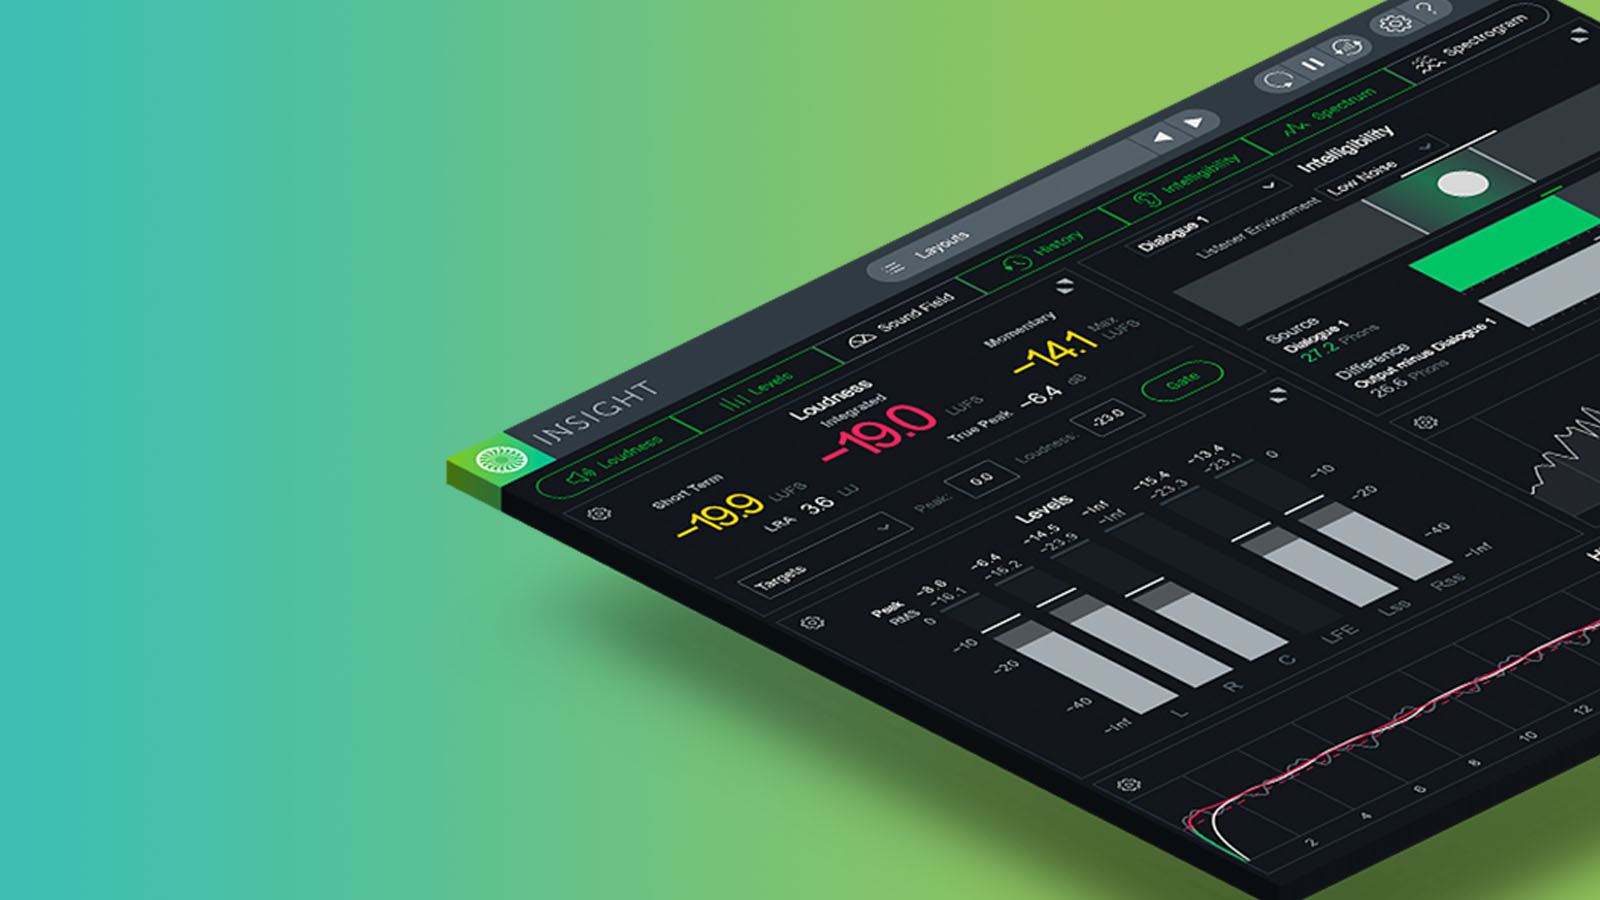 Insight 2 lets you track your levels throughout the entire mixing process.